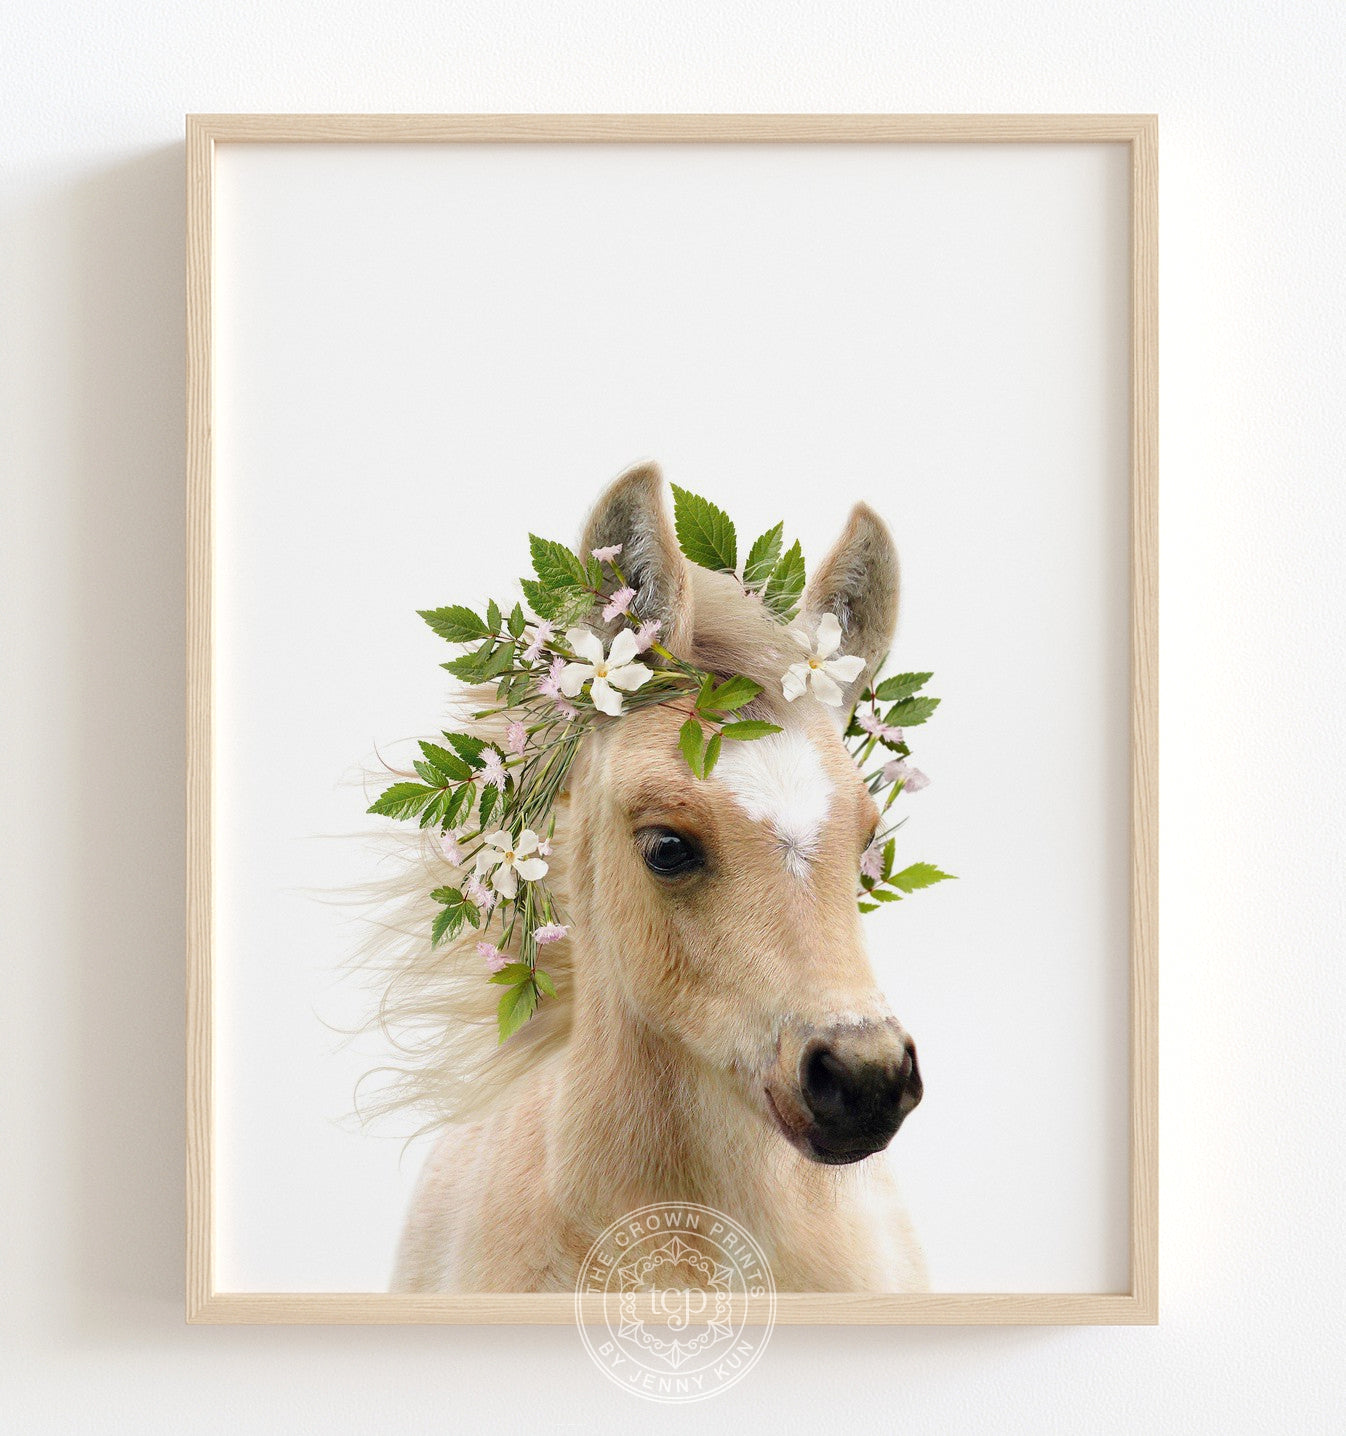 Baby Horse With Flower Crown And Blue Sky Print The Crown Prints